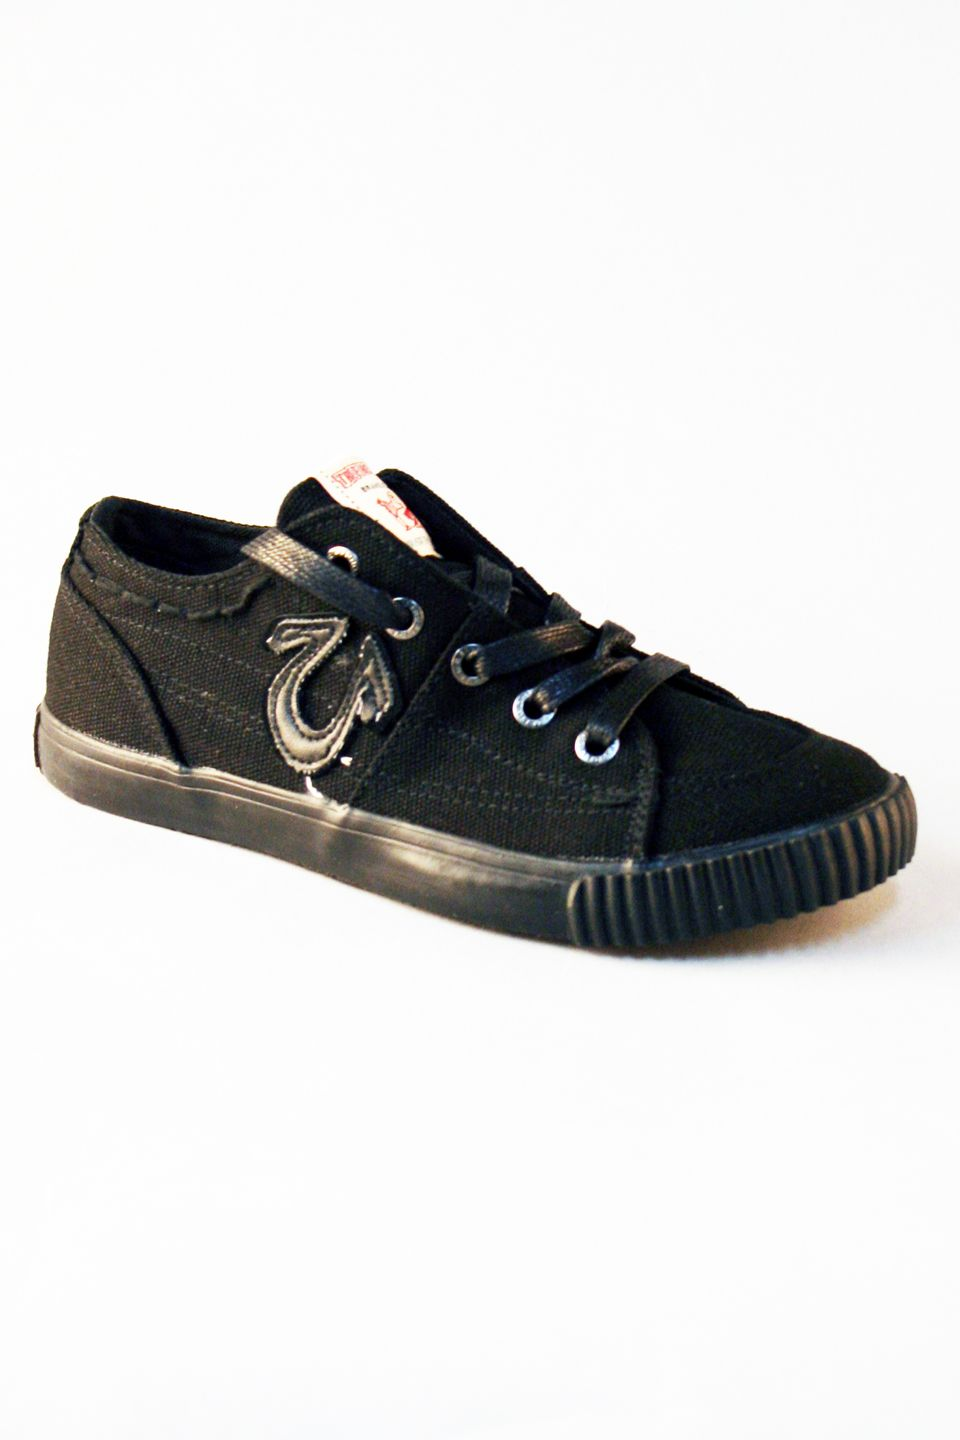 To acquire Religion true shoes photo picture trends